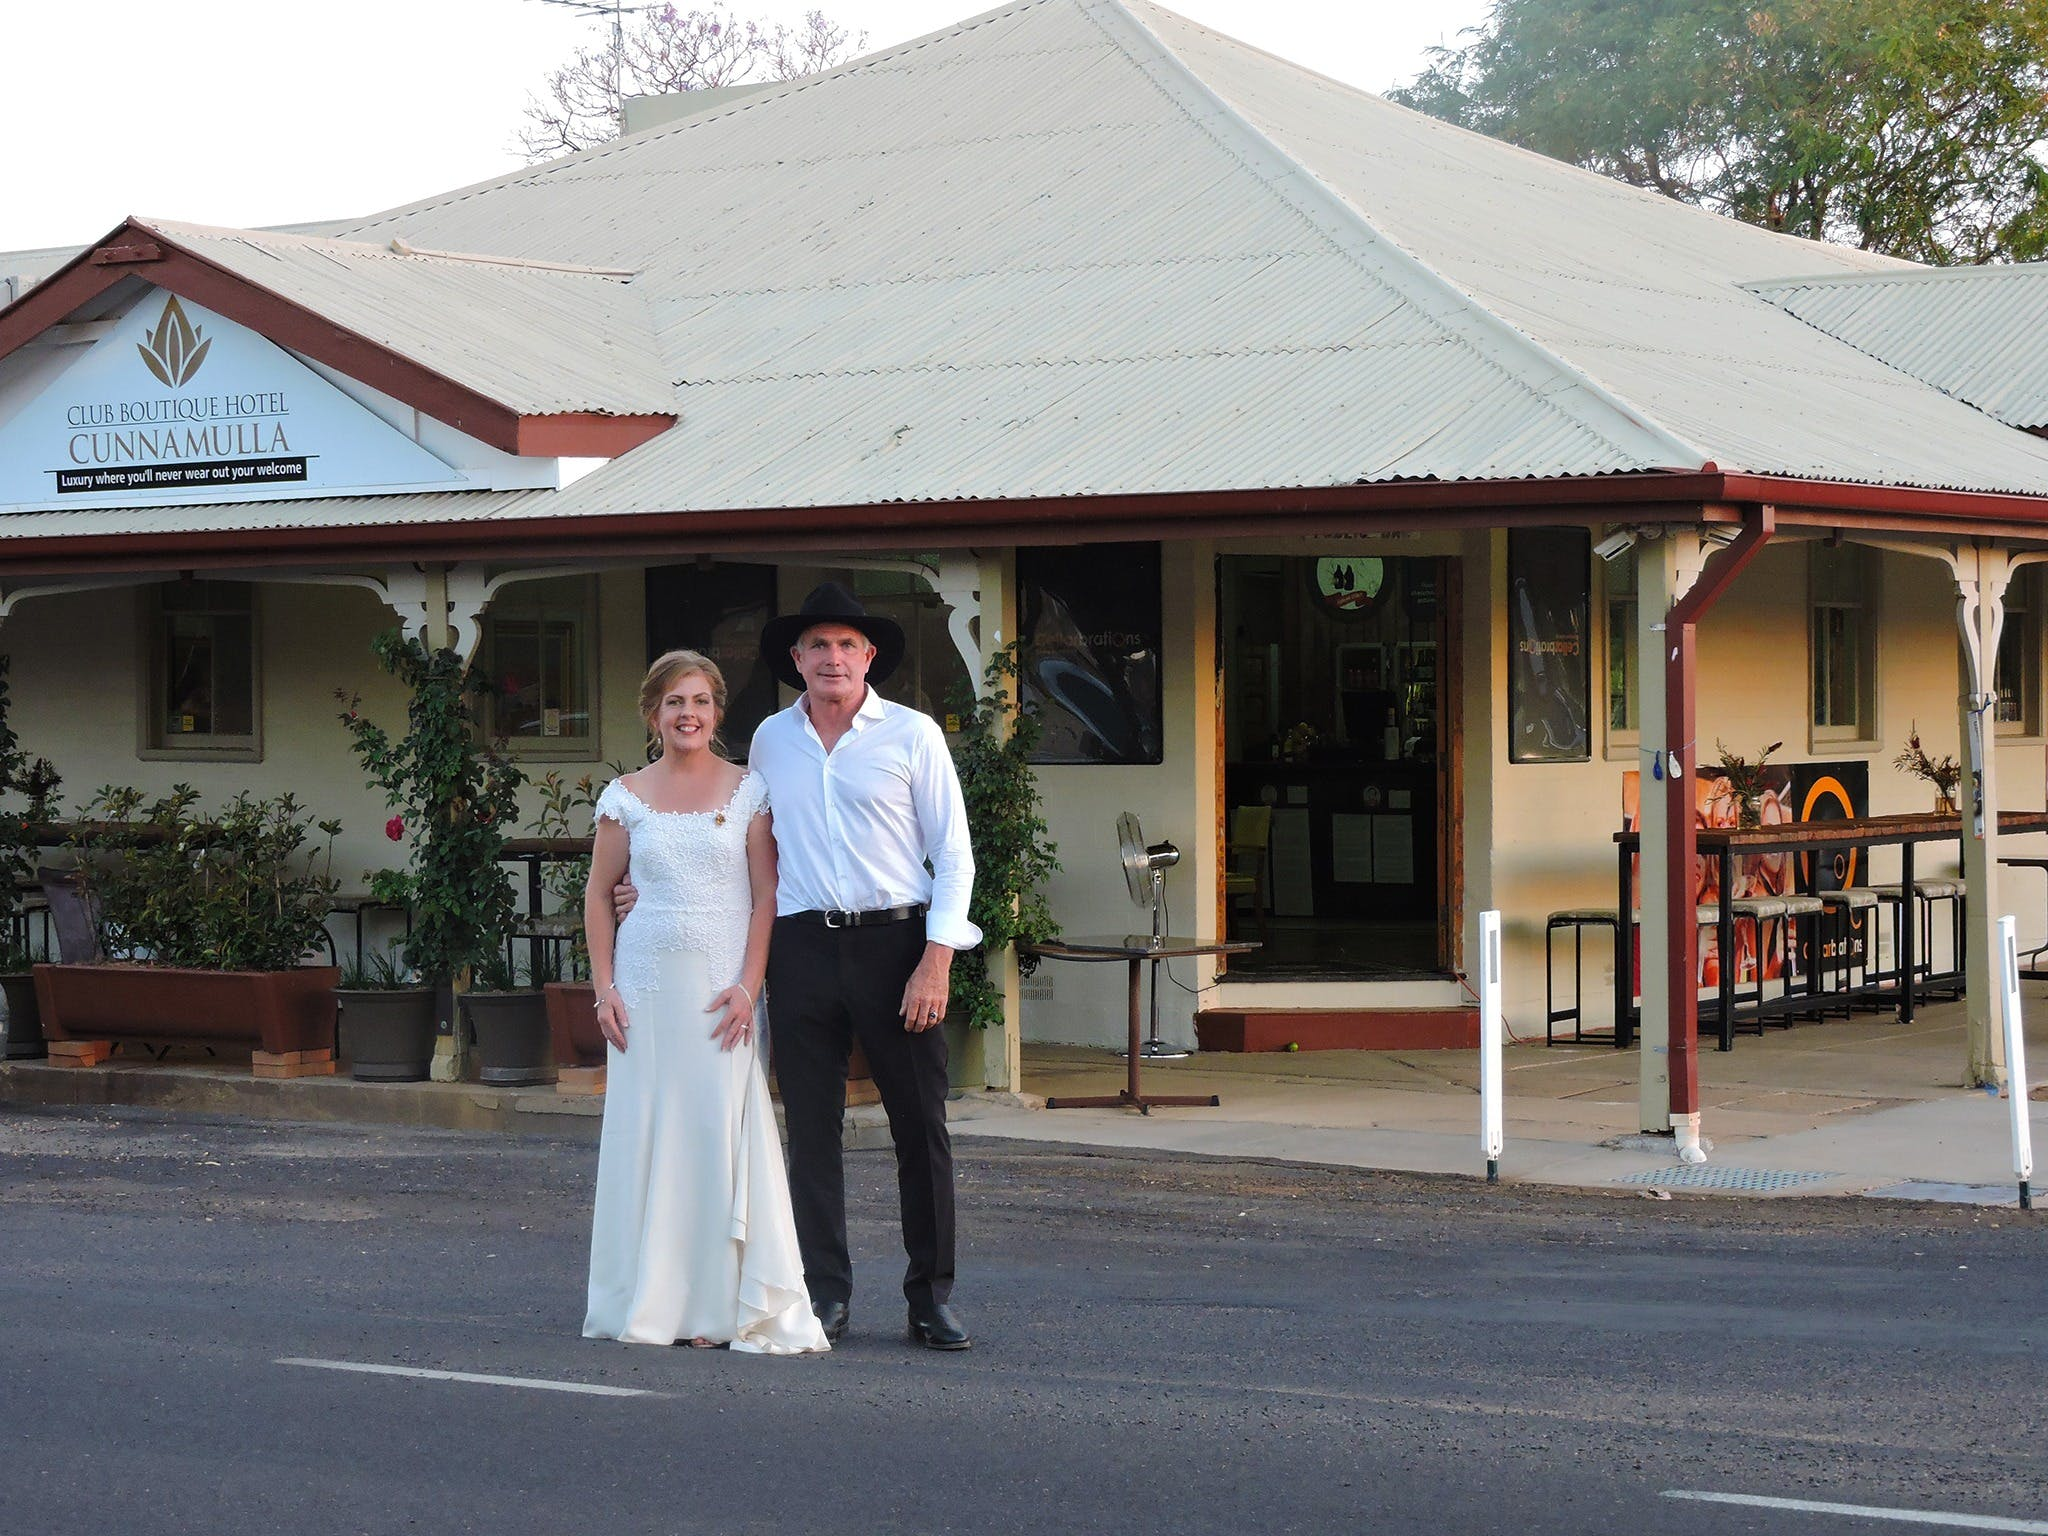 Club Boutique Hotel Cunnamulla - Tourism Cairns